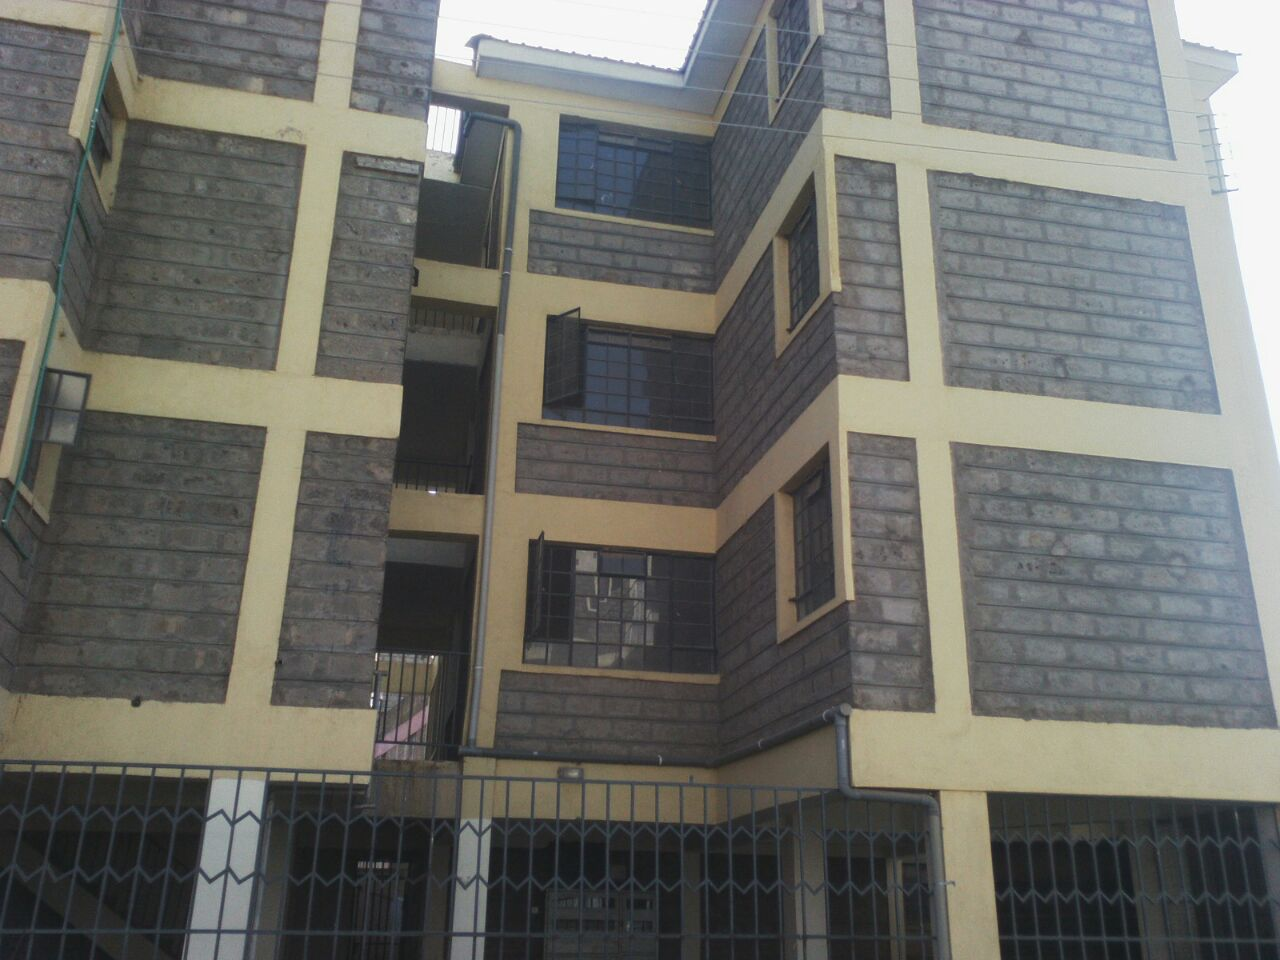 Apartment to let in kitengela kenya